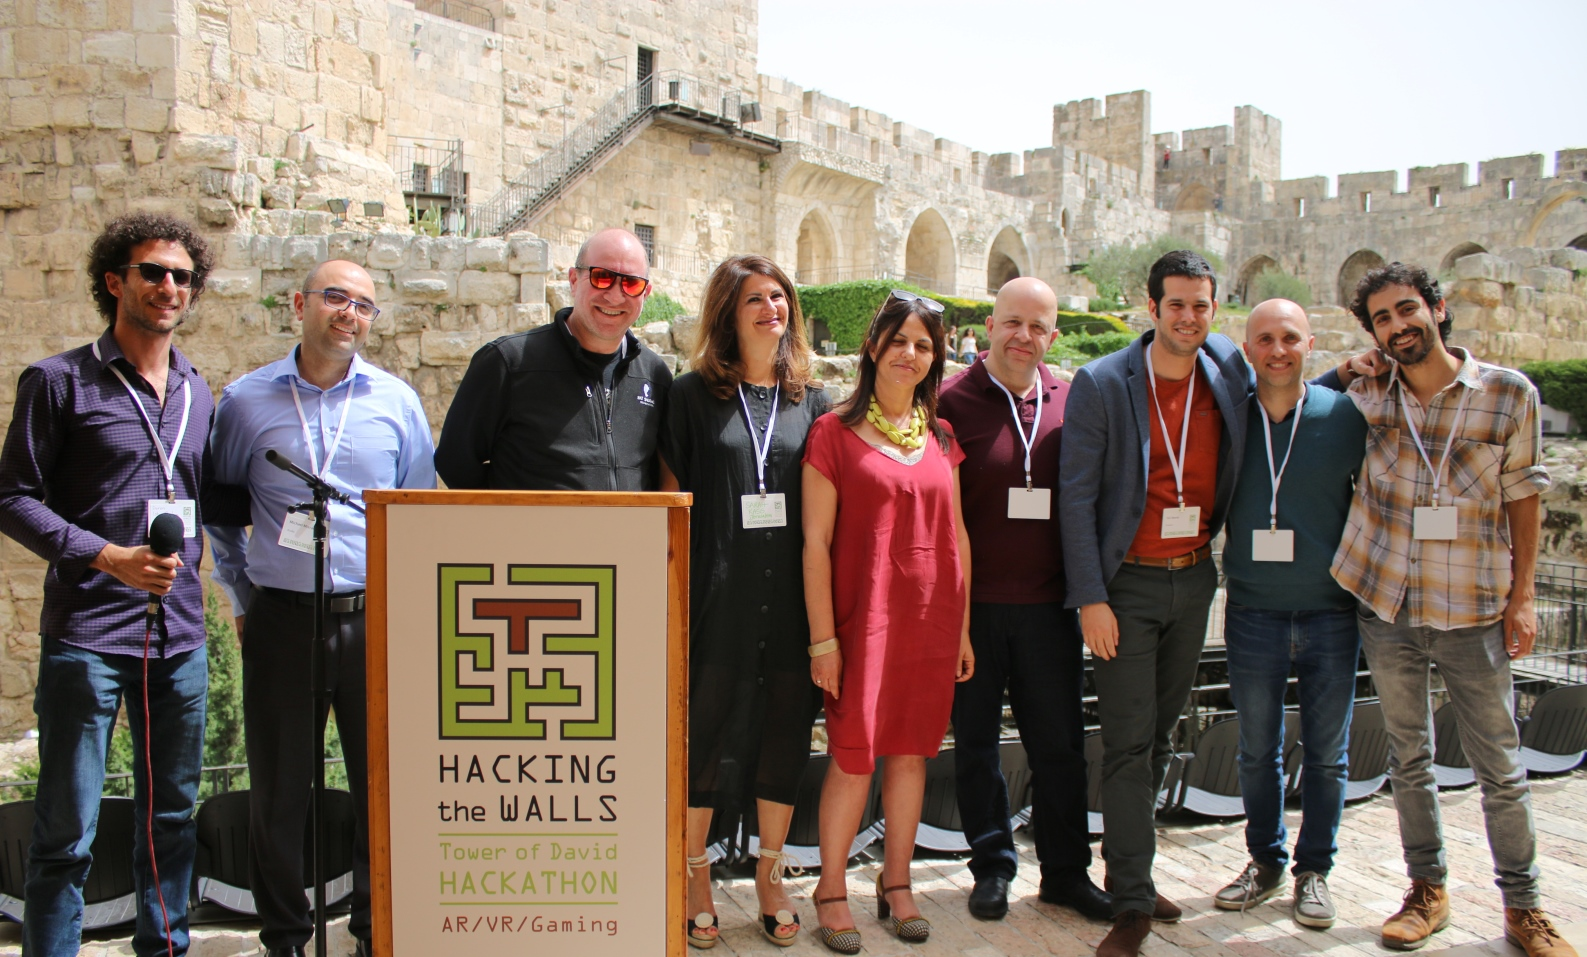 Cap: From left, Doron Ish Shalom of the Israel Innovation Institute, AtoBe Accelerator Director Michael Mizrahi, Elie Wurtman of PICO Partners, Sarah Kass of iJerusalem, Tower of David Museum director Eilat Lieber, Itzik Ozer of the Jerusalem Development Authority, and the second-place Proverb team. Photo courtesy of the Tower of David Museum